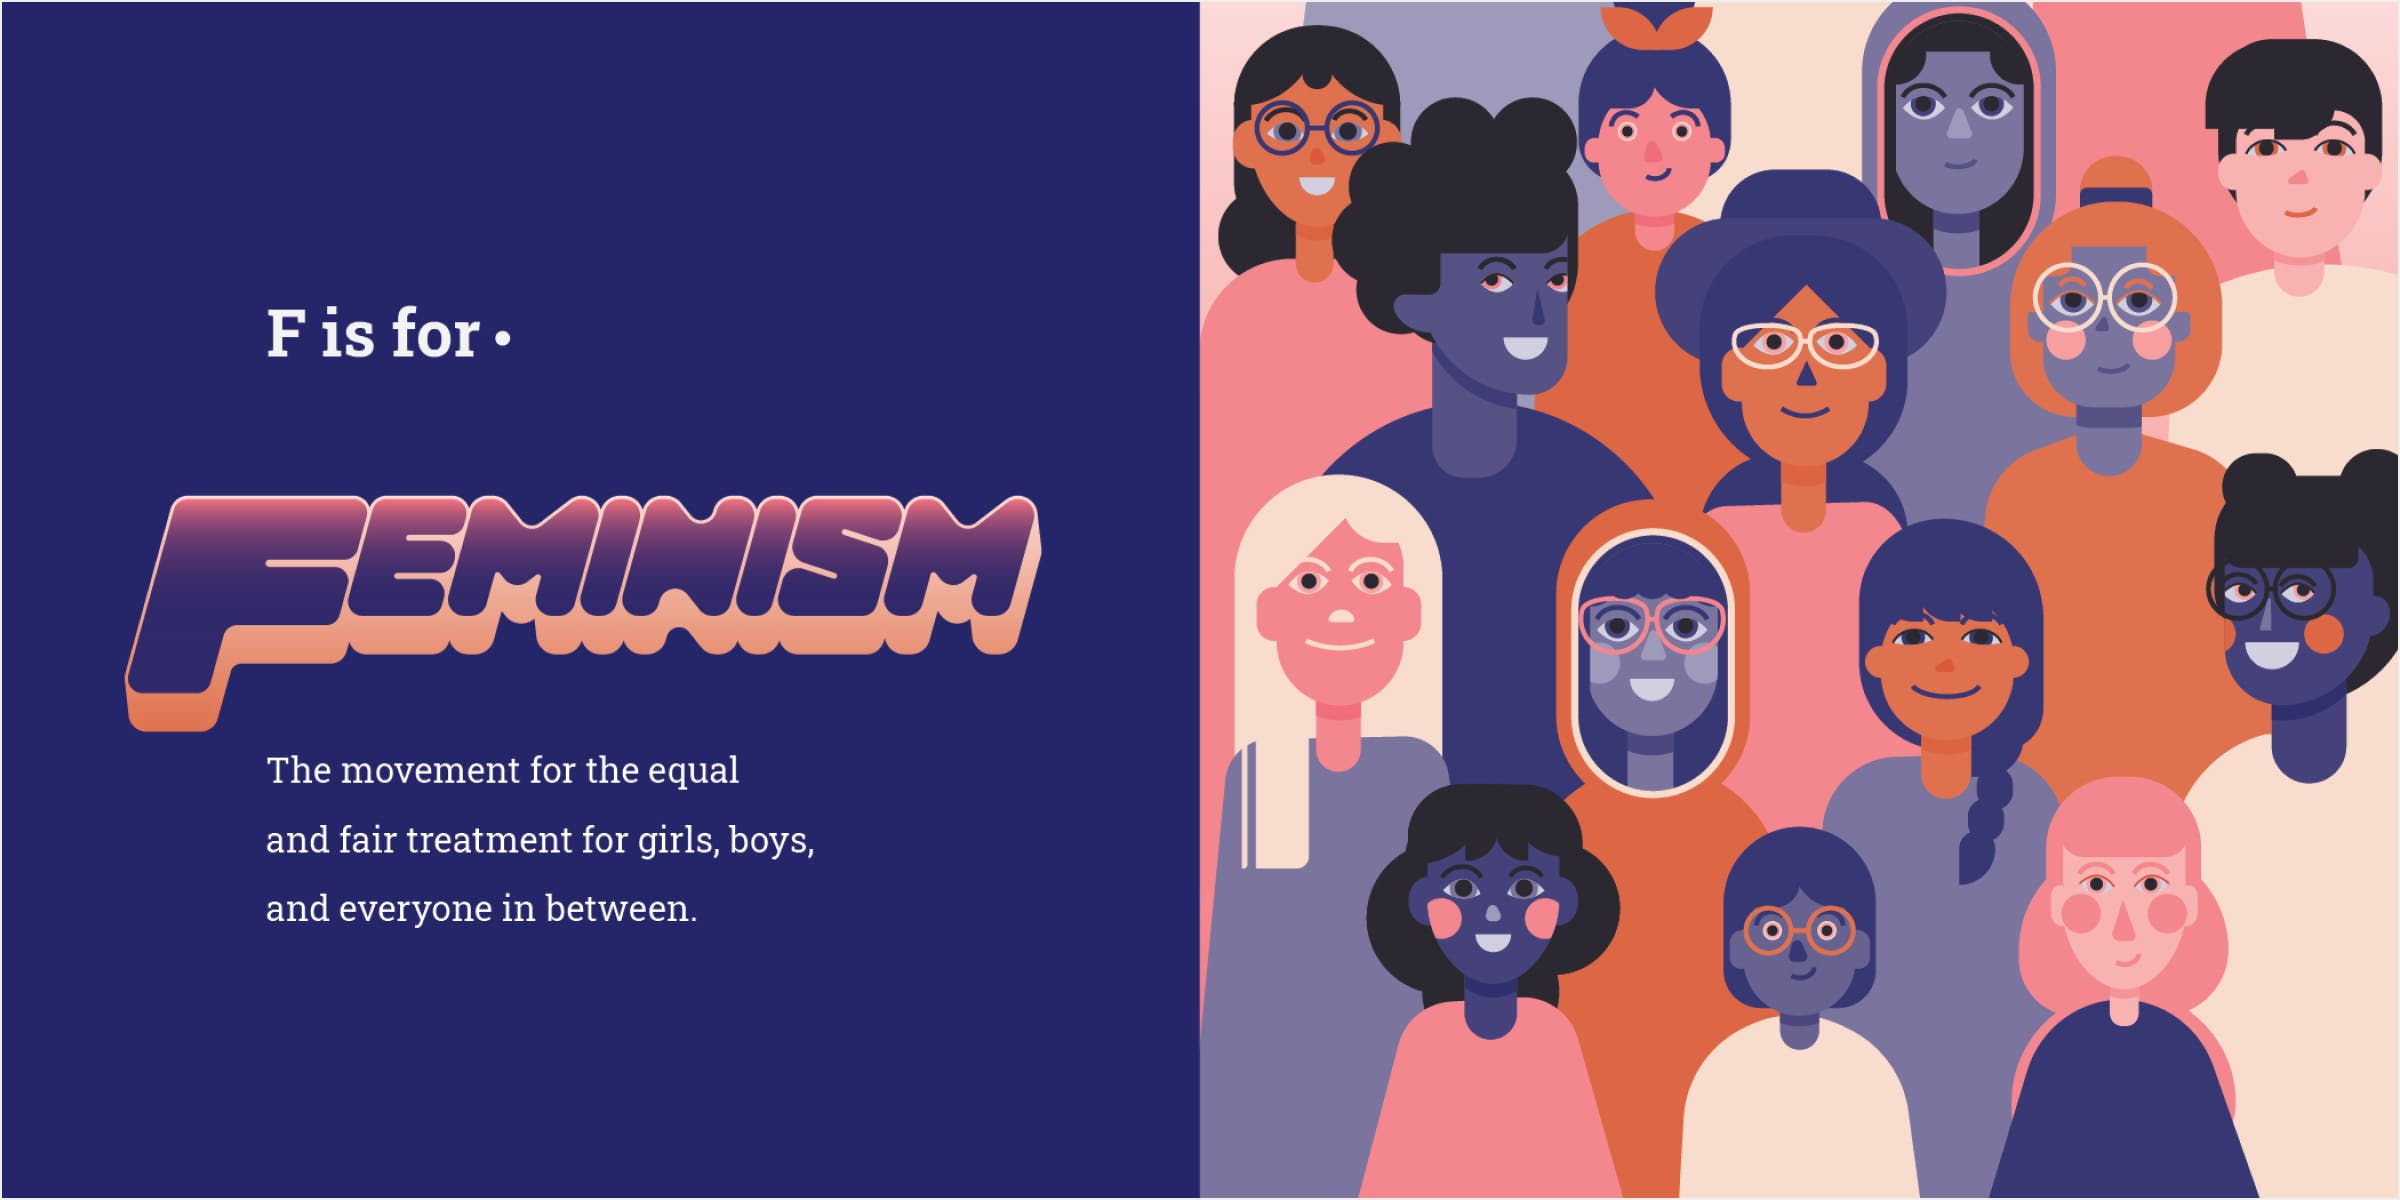 Feminism spread in a book. Several girls stand together to advocate women's rights.